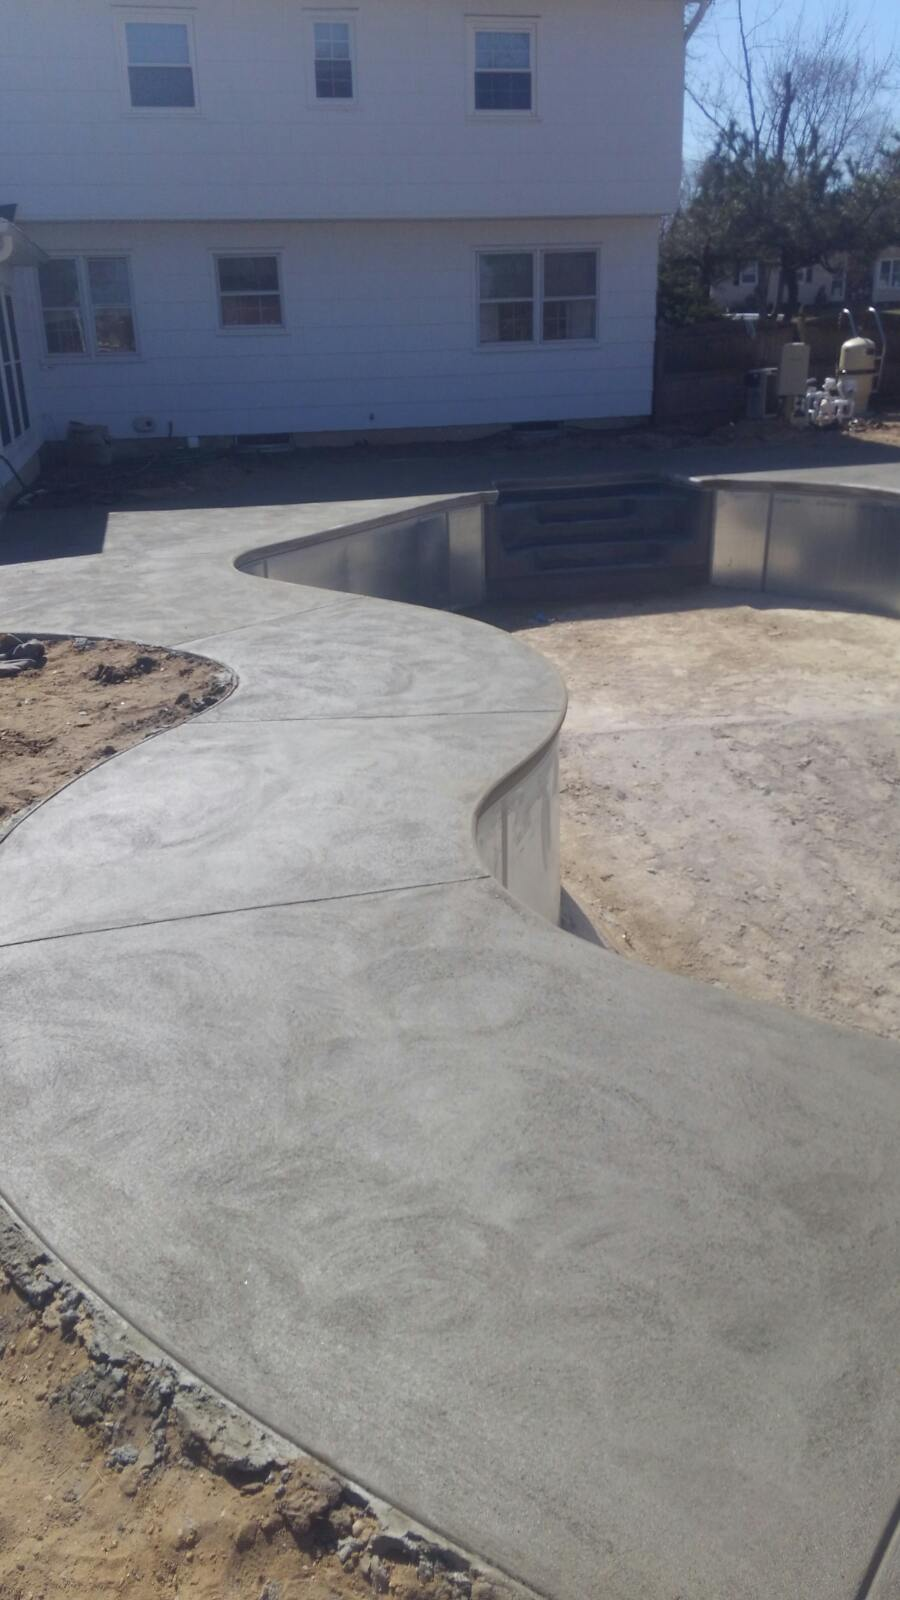 Concrete Pool Being Installed